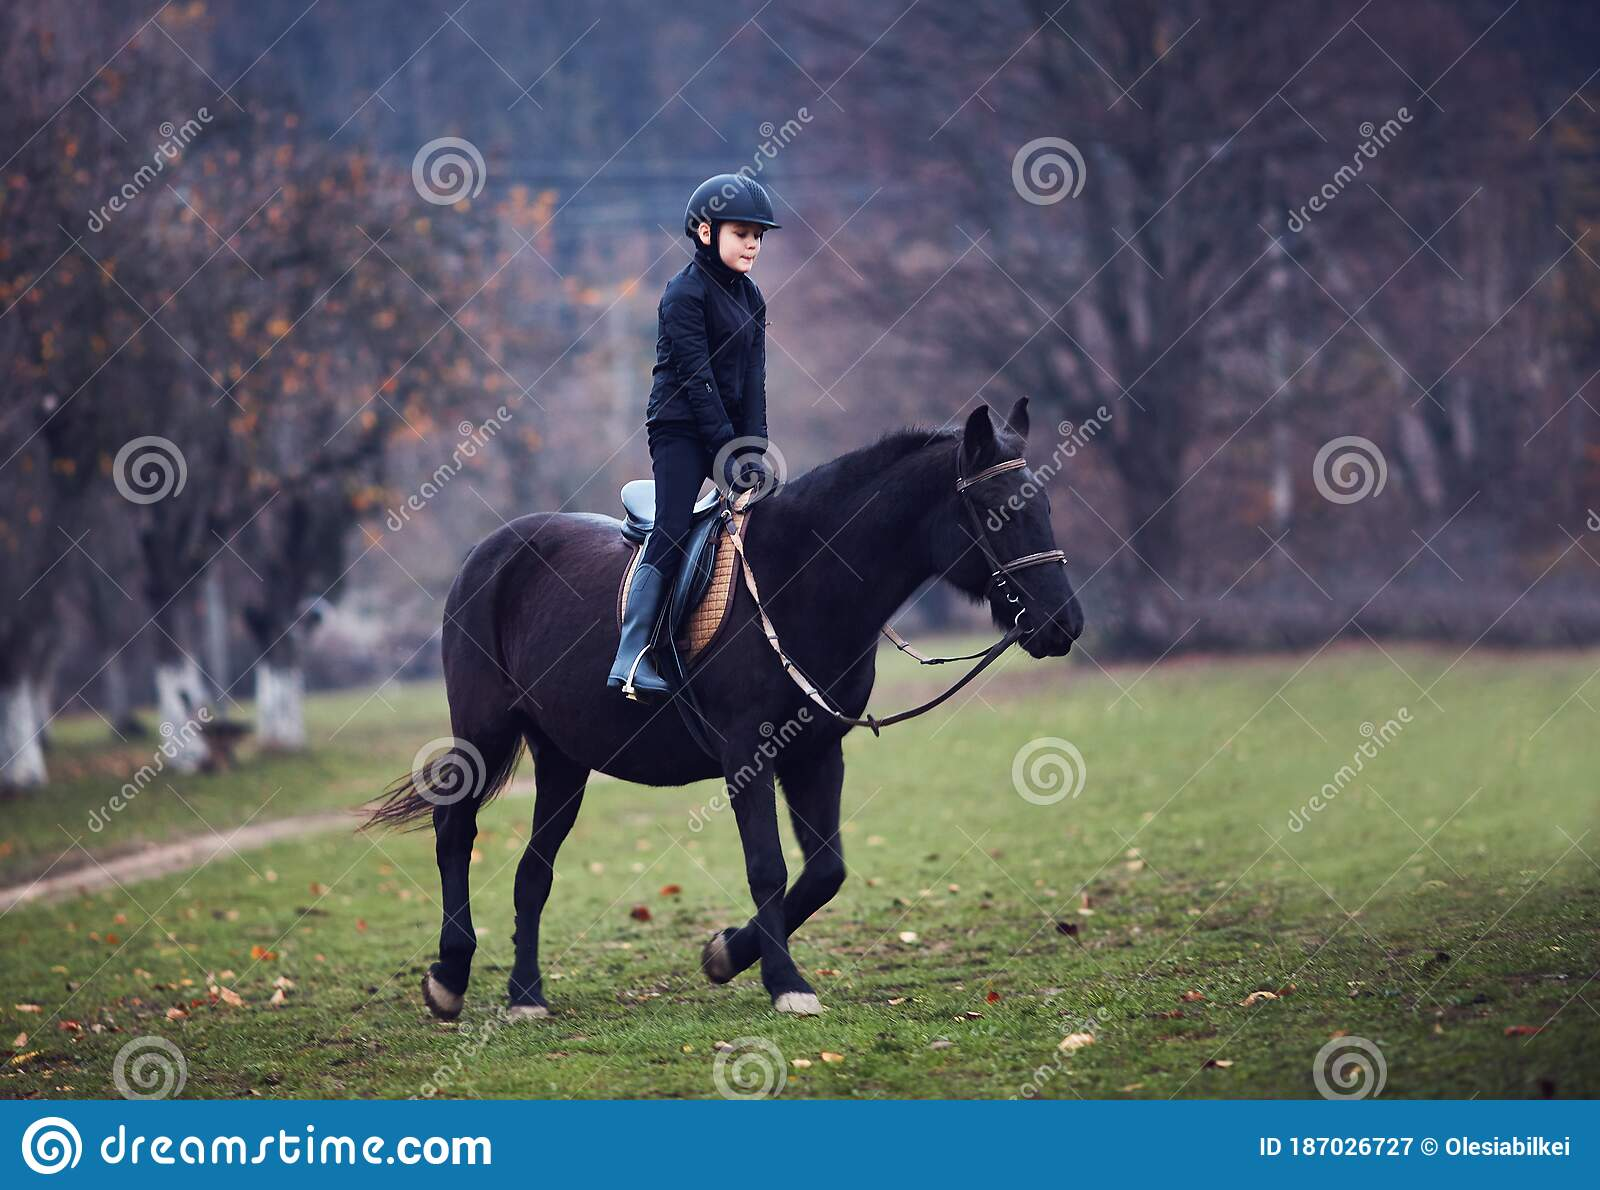 Young Boy Kid Is Taking A Horse Riding Lesson Equestrian Sport Horseback Rider Outfit Stock Image Image Of Equestrian Hobby 187026727